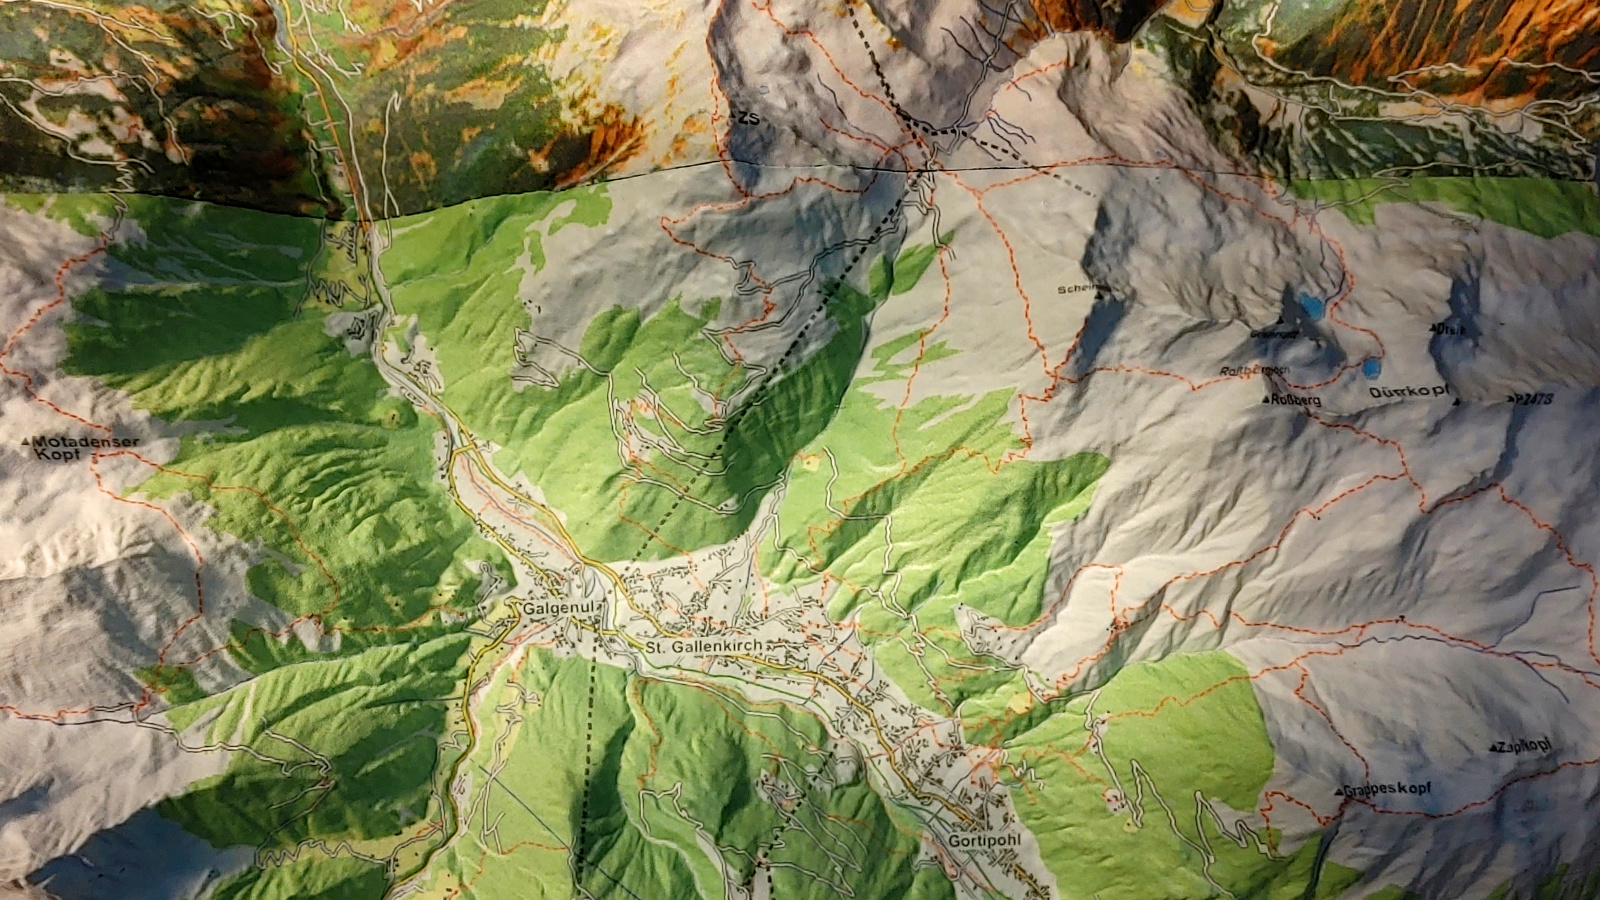 Visualize ski routes, airlifts and access roads